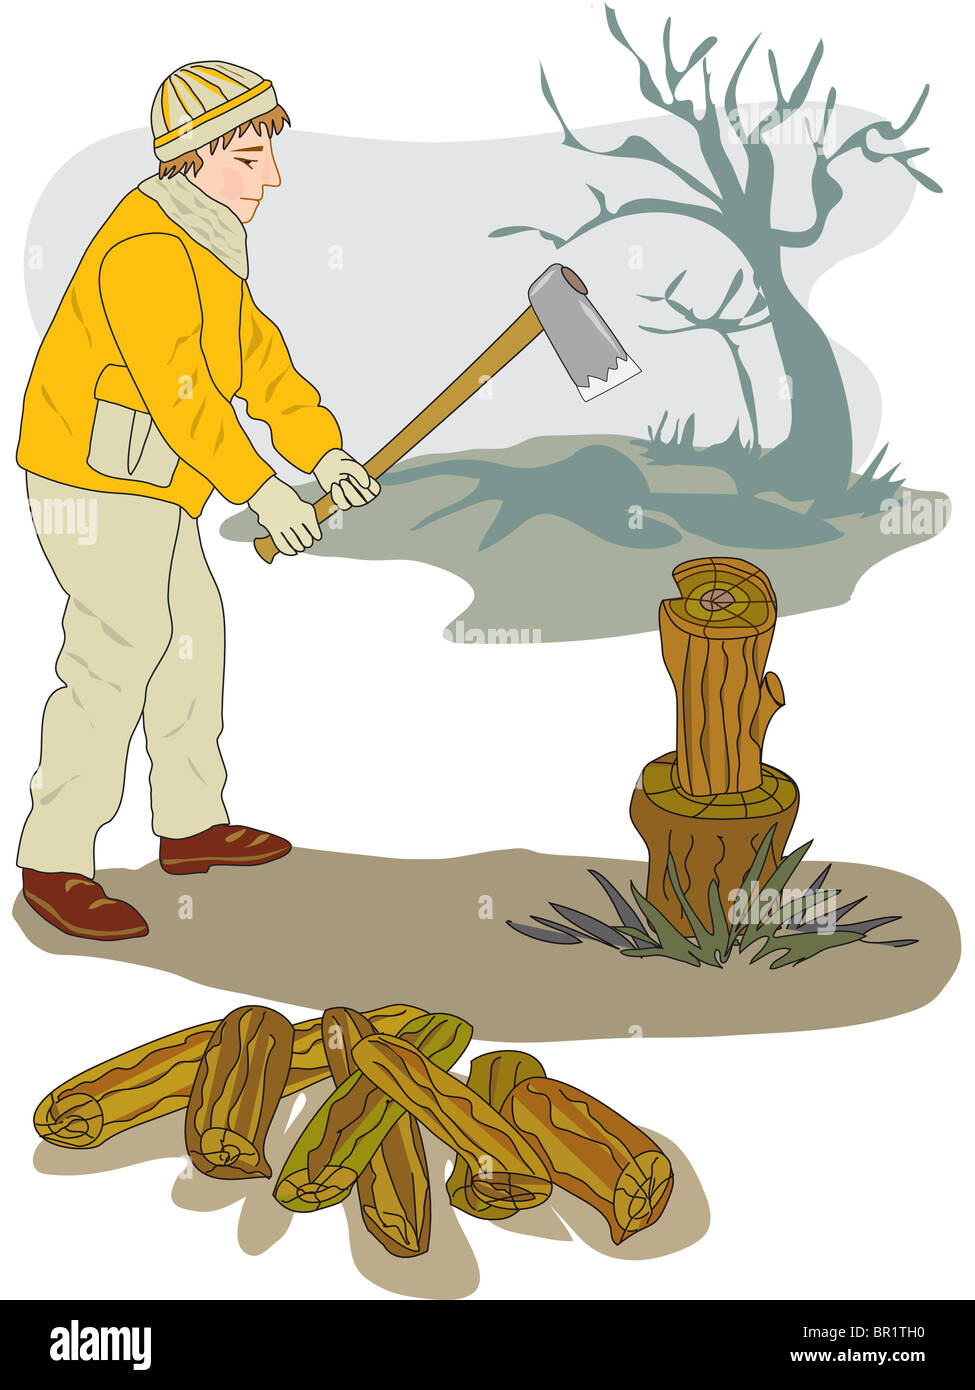 A drawing of a man chopping firewood Stock Photo